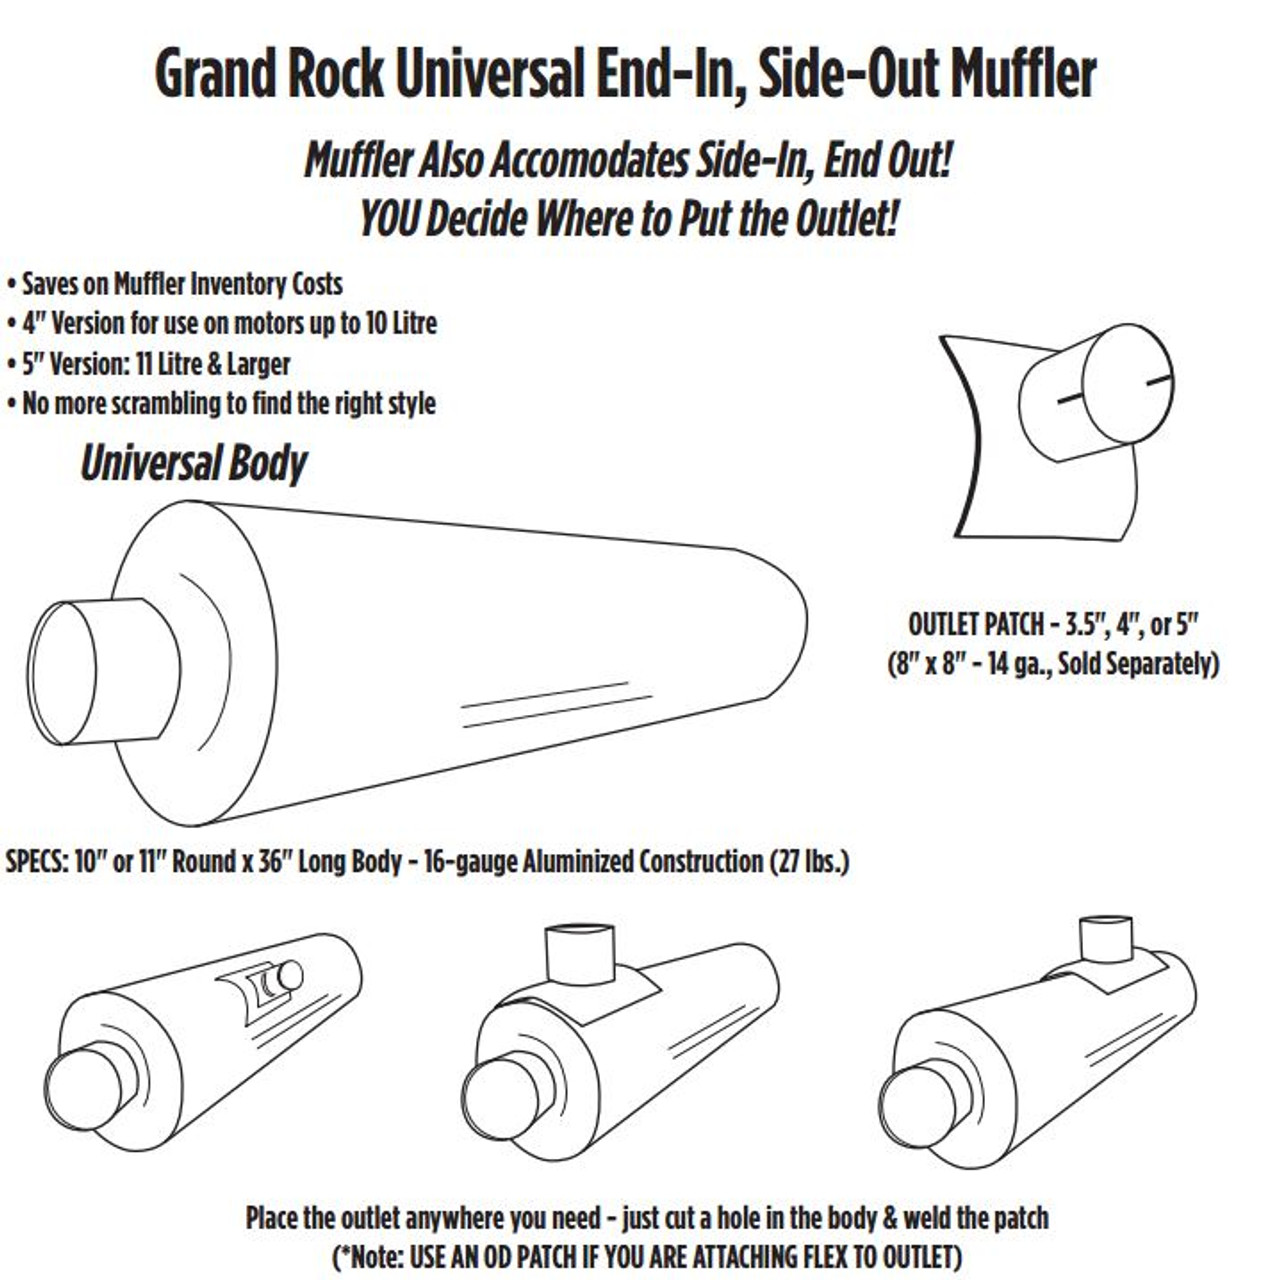 "ARG-0536 10"" Universal Round 36"" Muffler with one 5"" ID ARG-0536"